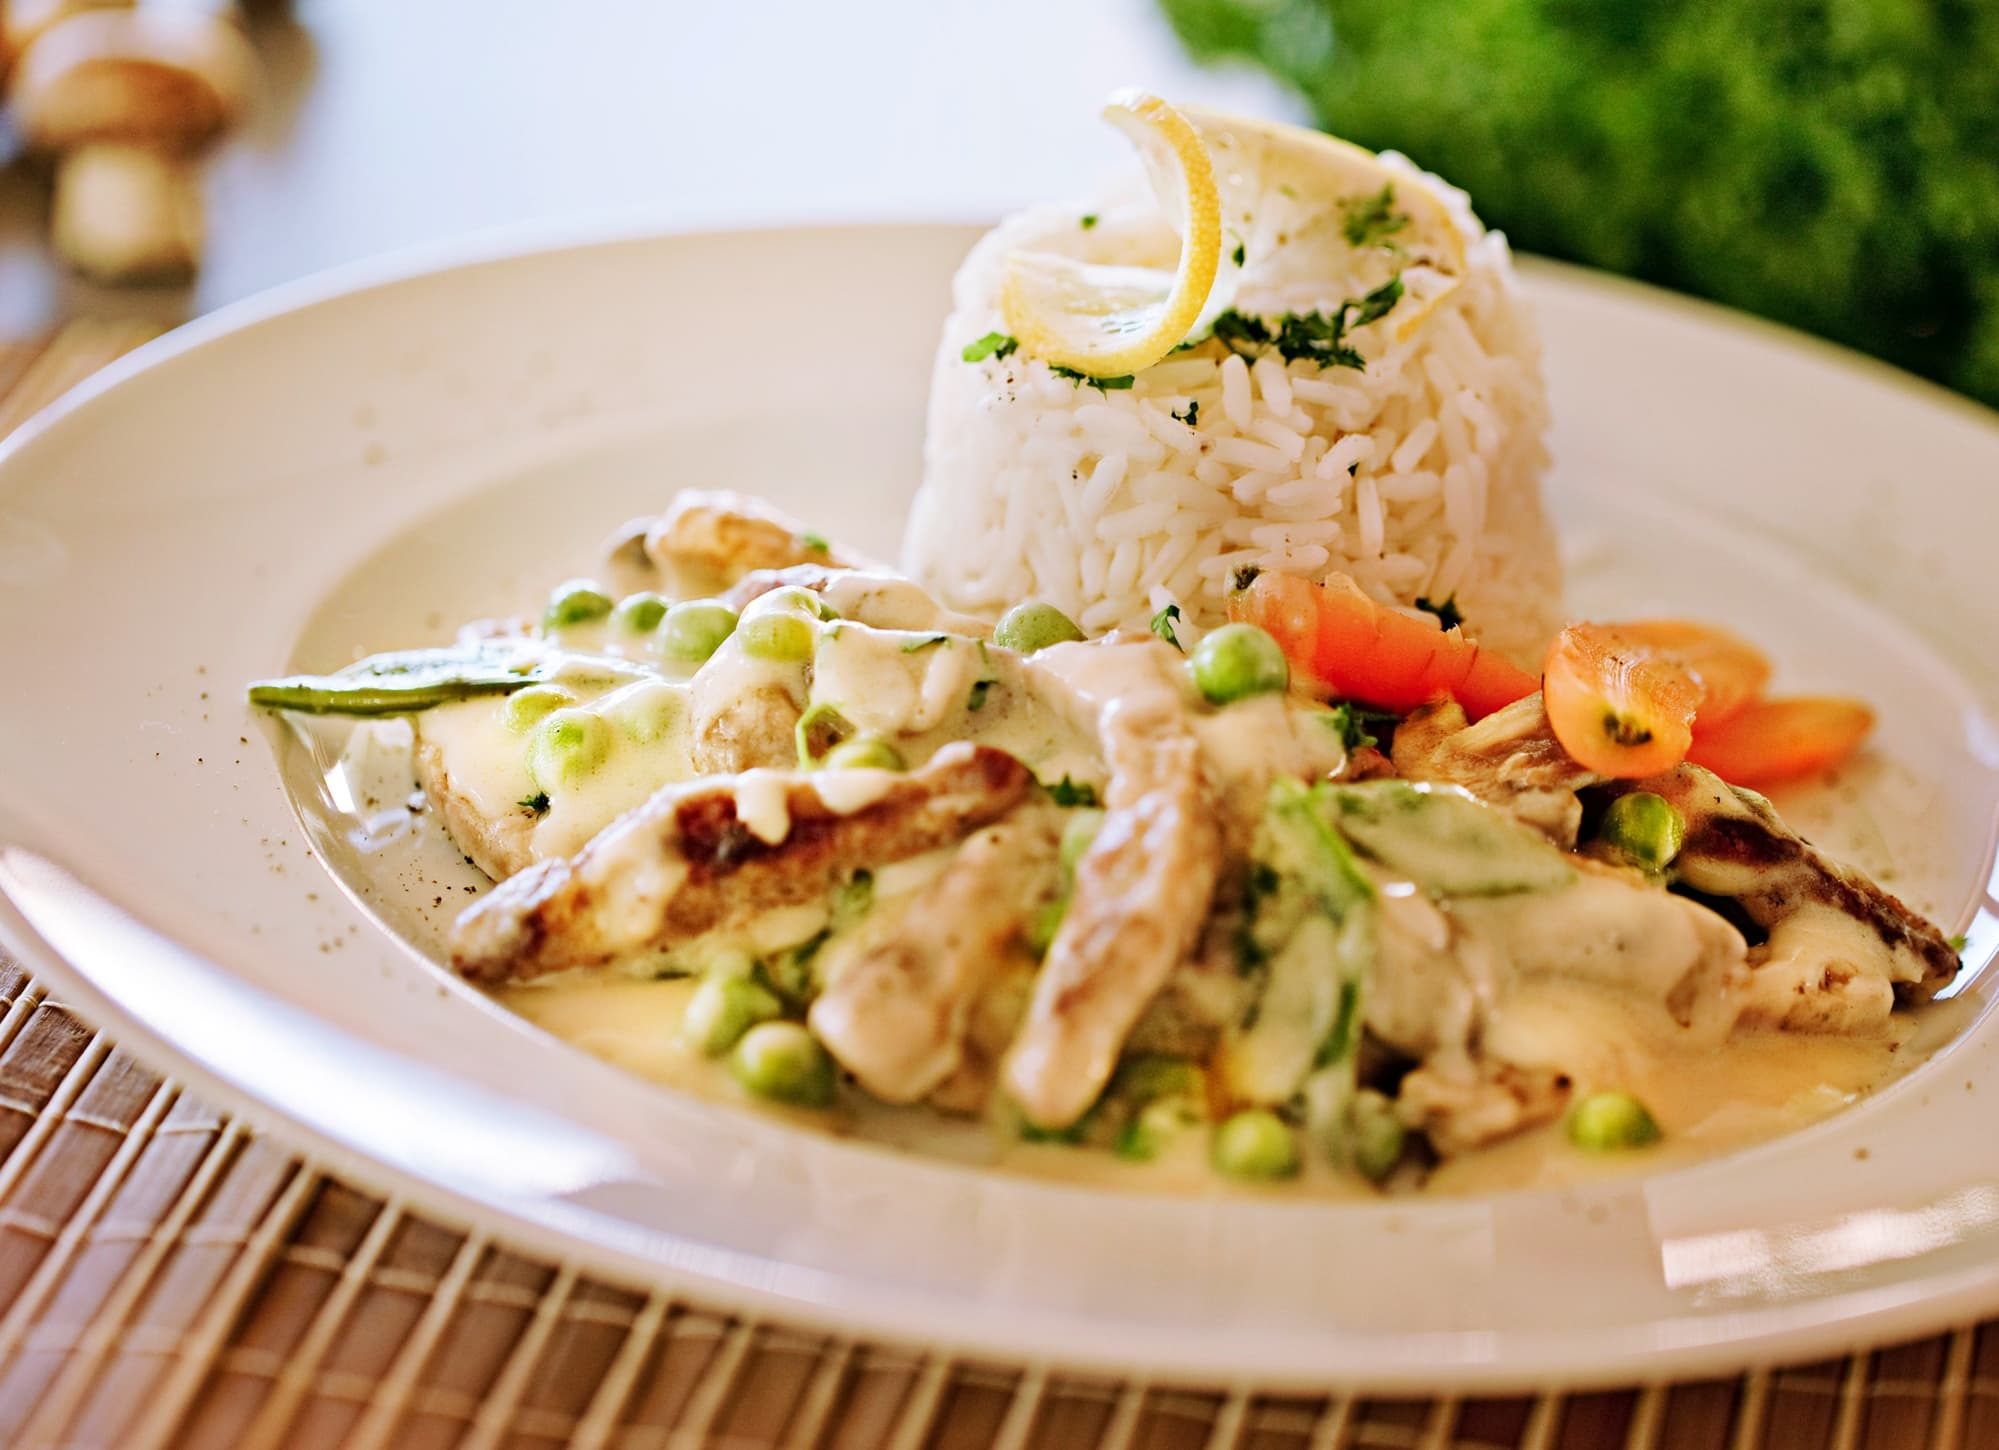 Creamy Fricassee With Bell Peppers